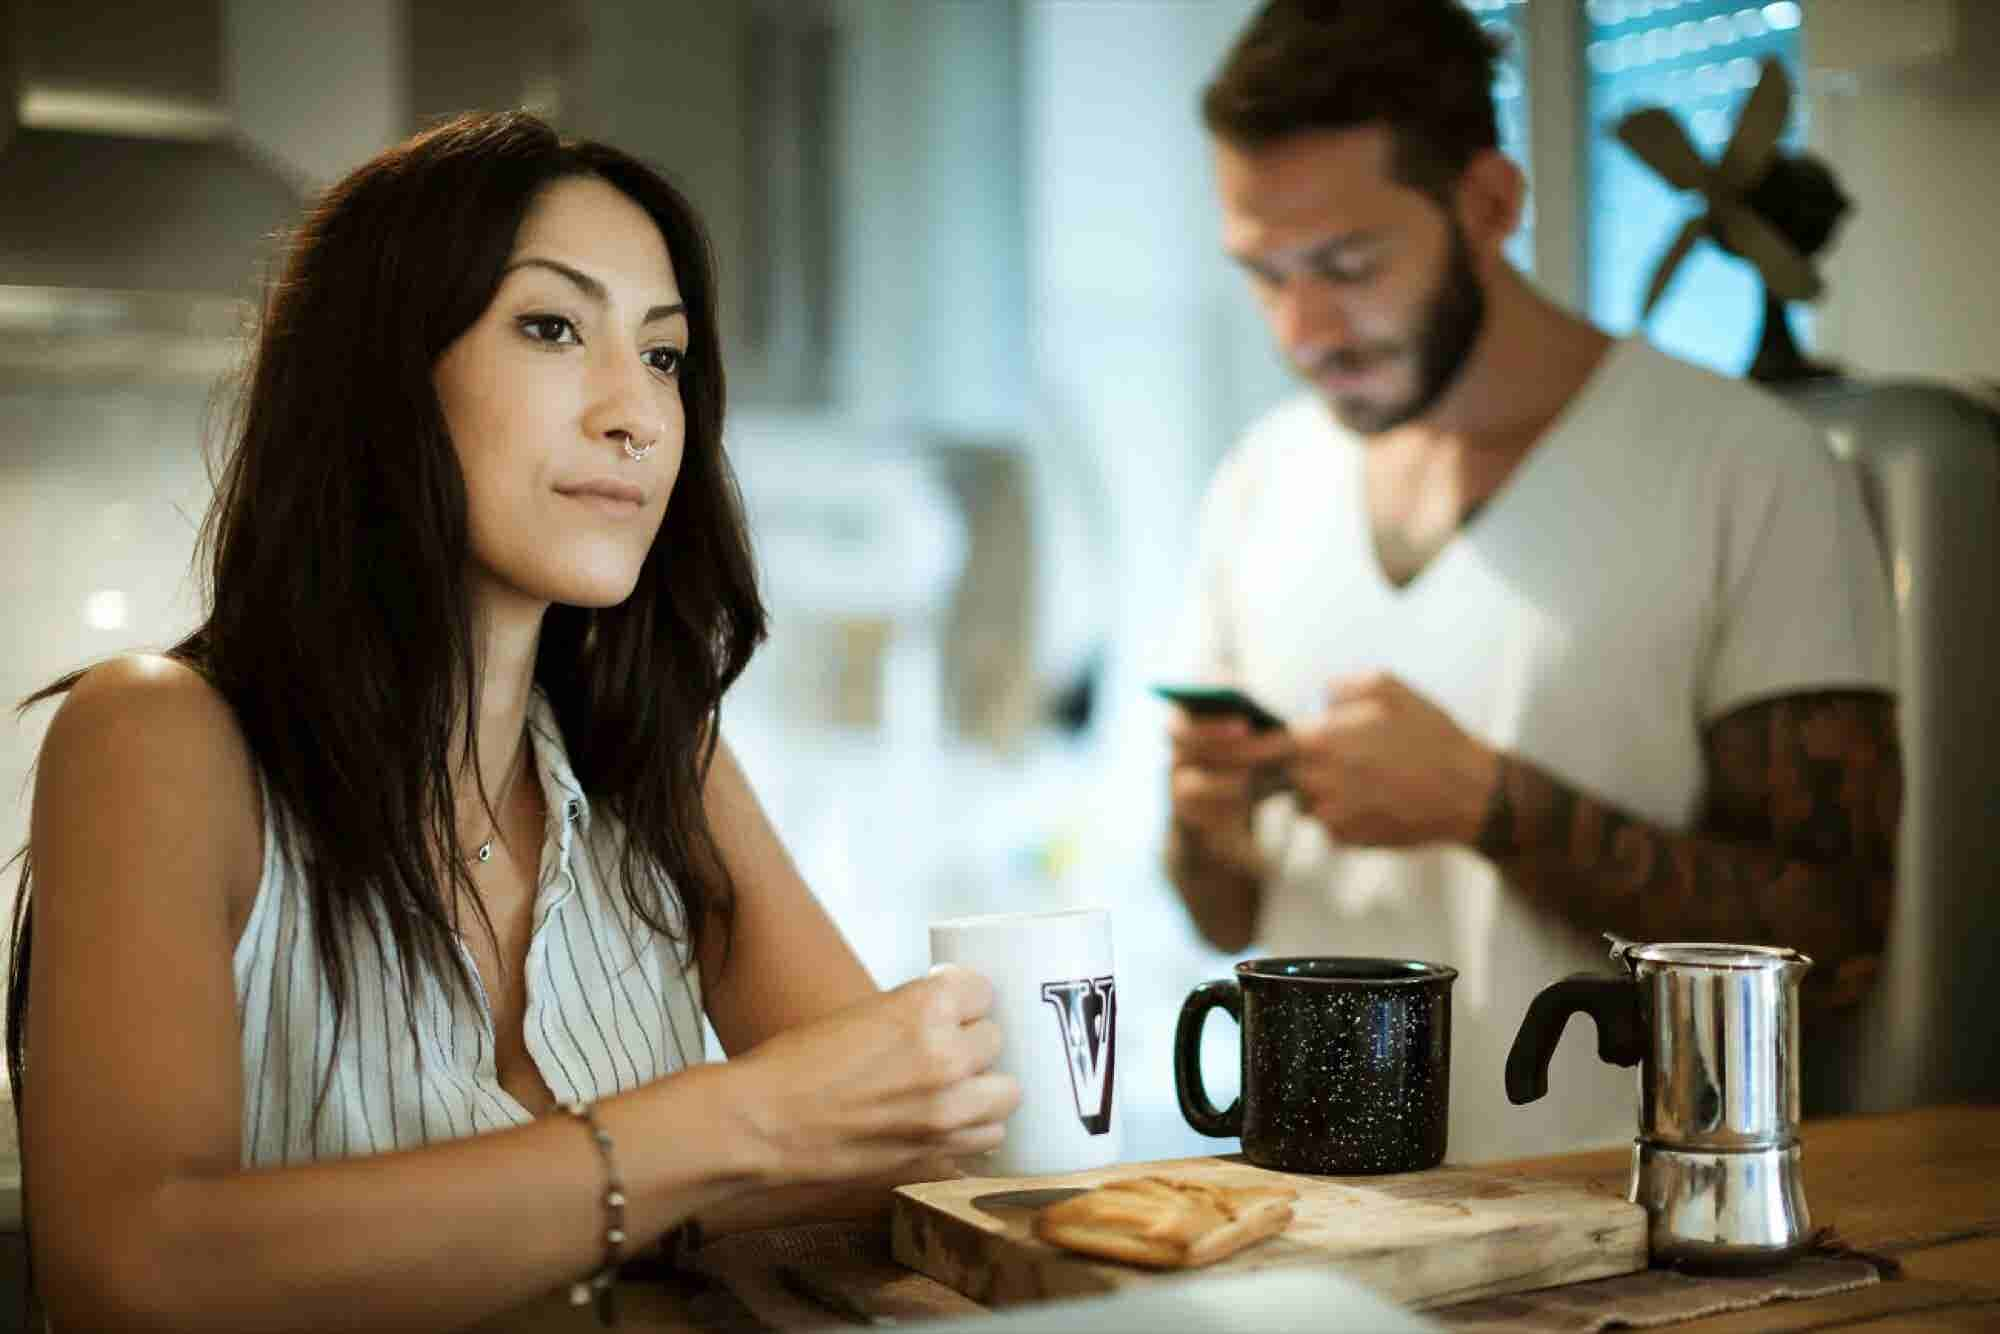 Ask the Relationship Expert: My Partner Resents the Time I Spend on My Business